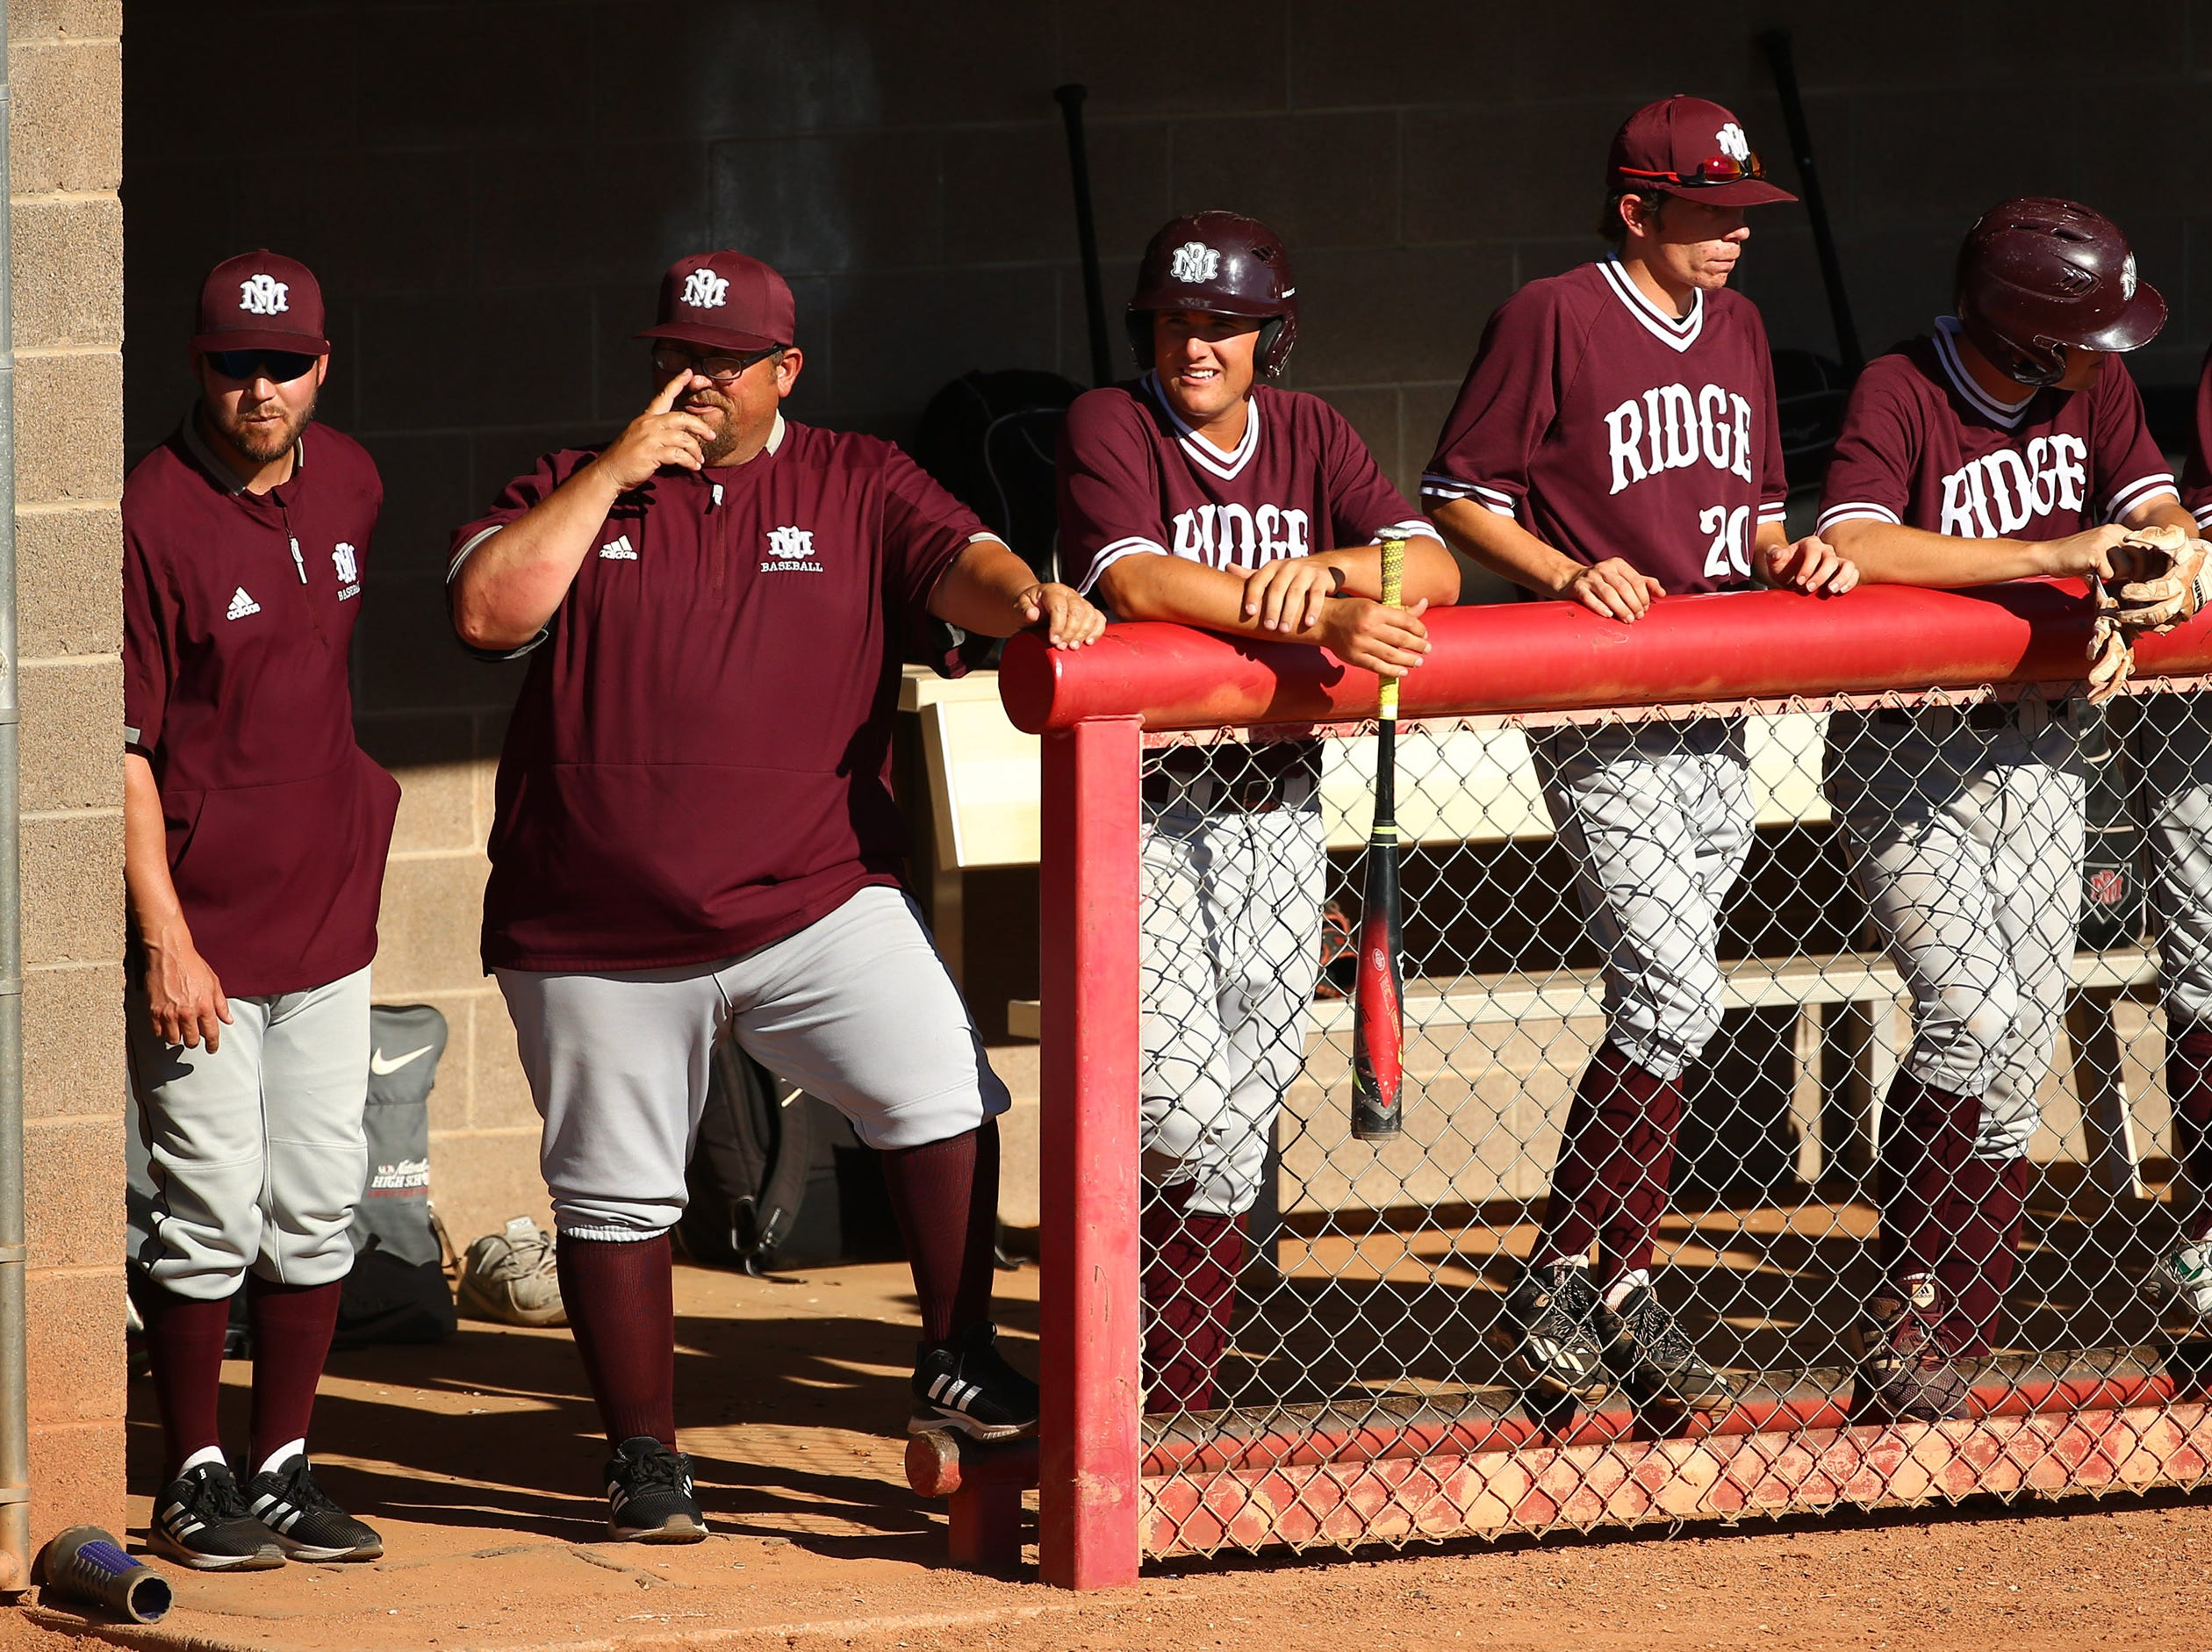 Mountain Ridge coach Artie Cox (second to the left) against Brophy Prep in the third inning on Apr. 24, 2019 in Phoenix, Ariz